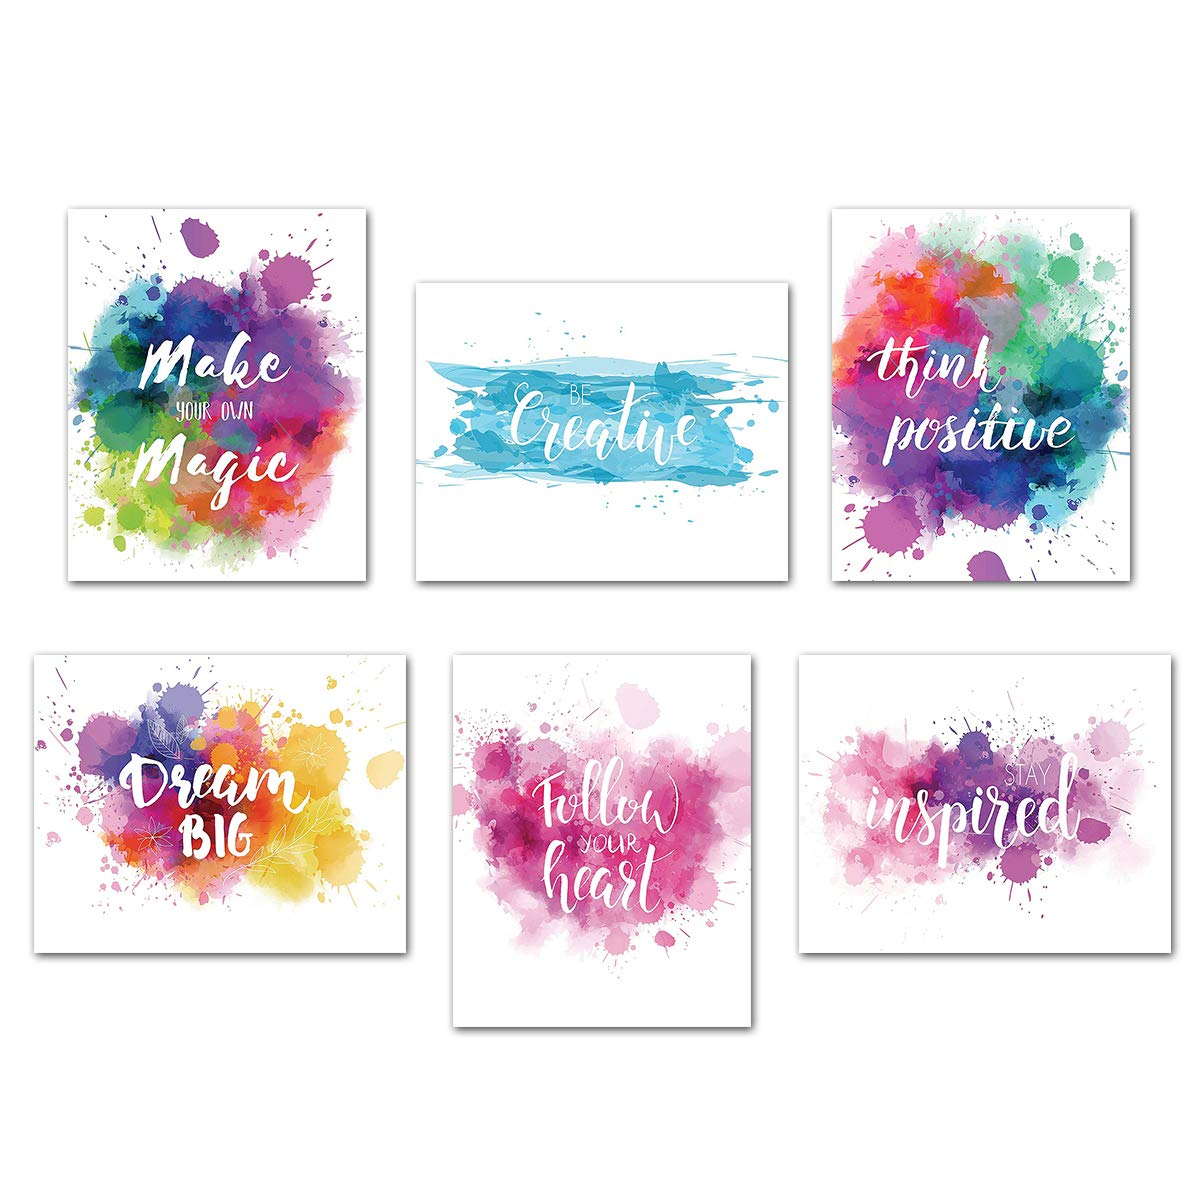 Inspirational Poster Motivational Wall Art - Creative Quotes for Home Office Watercolor Canvas Print Artwork Bedroom Decor 8x10 Inch Unframed Set of 6 Positive Words Sayings Painting Phrase Picture